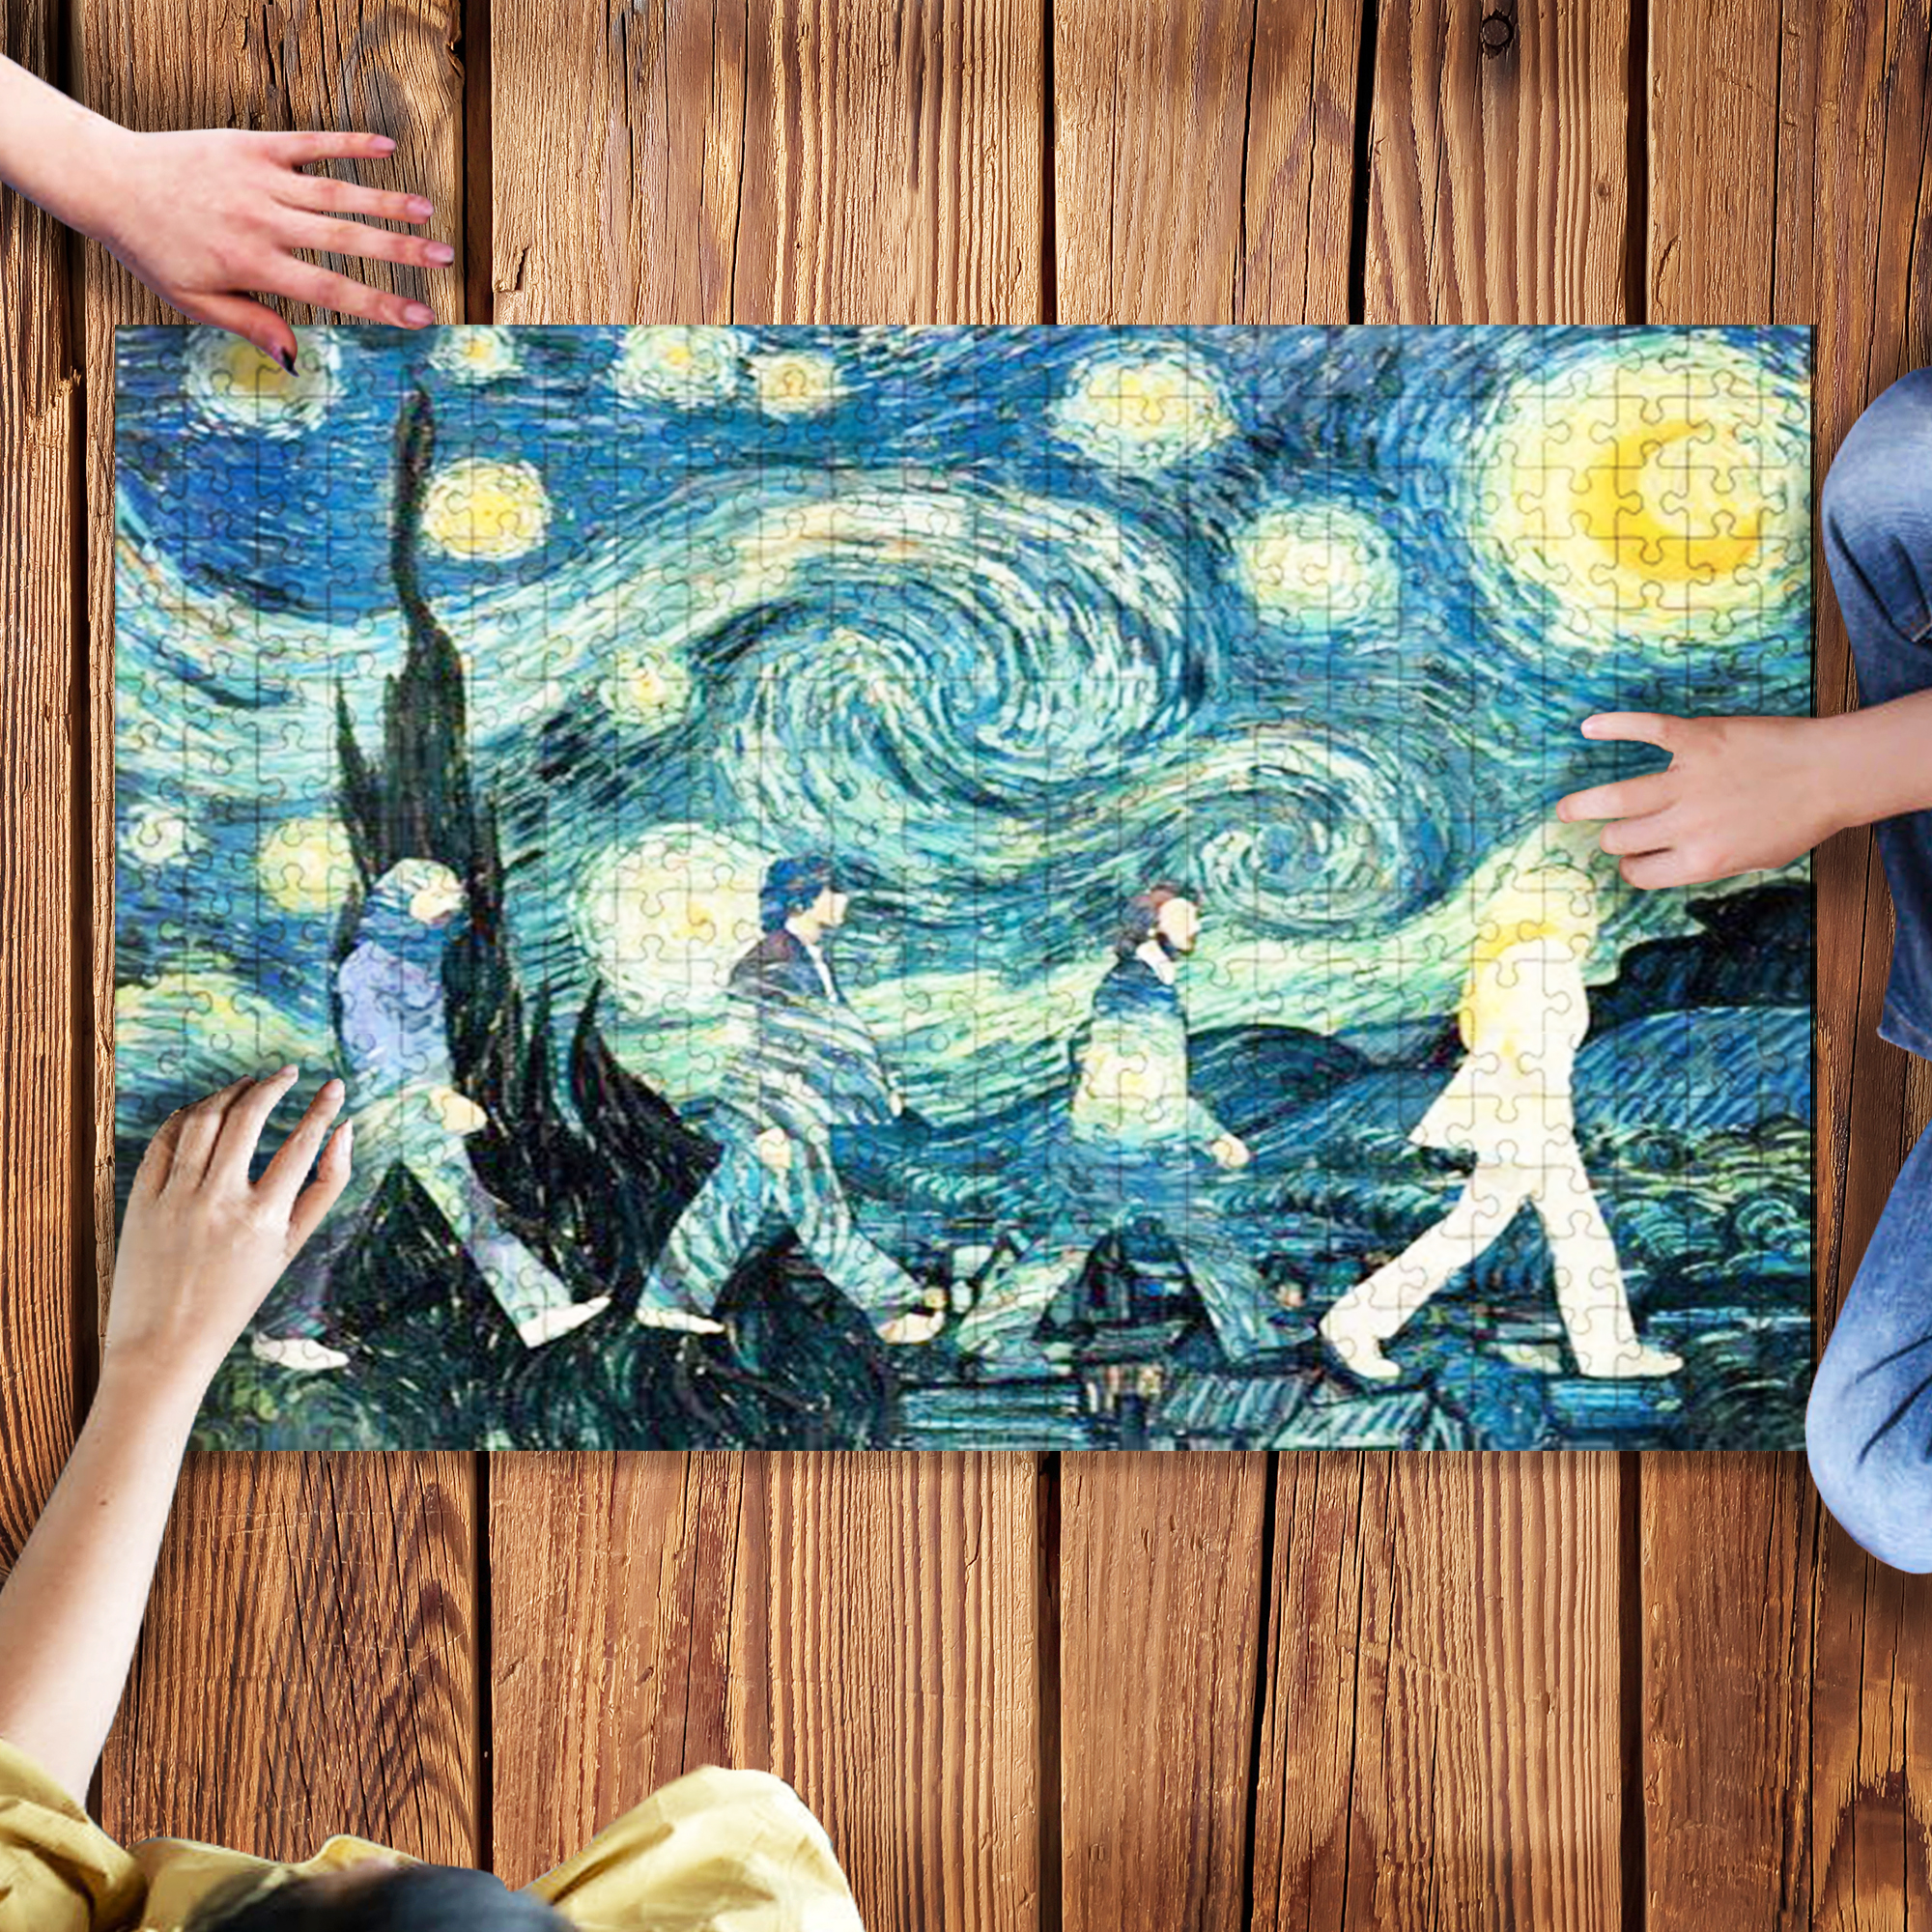 The beatles walking across abbey road vincent van gogh starry night jigsaw puzzle 2